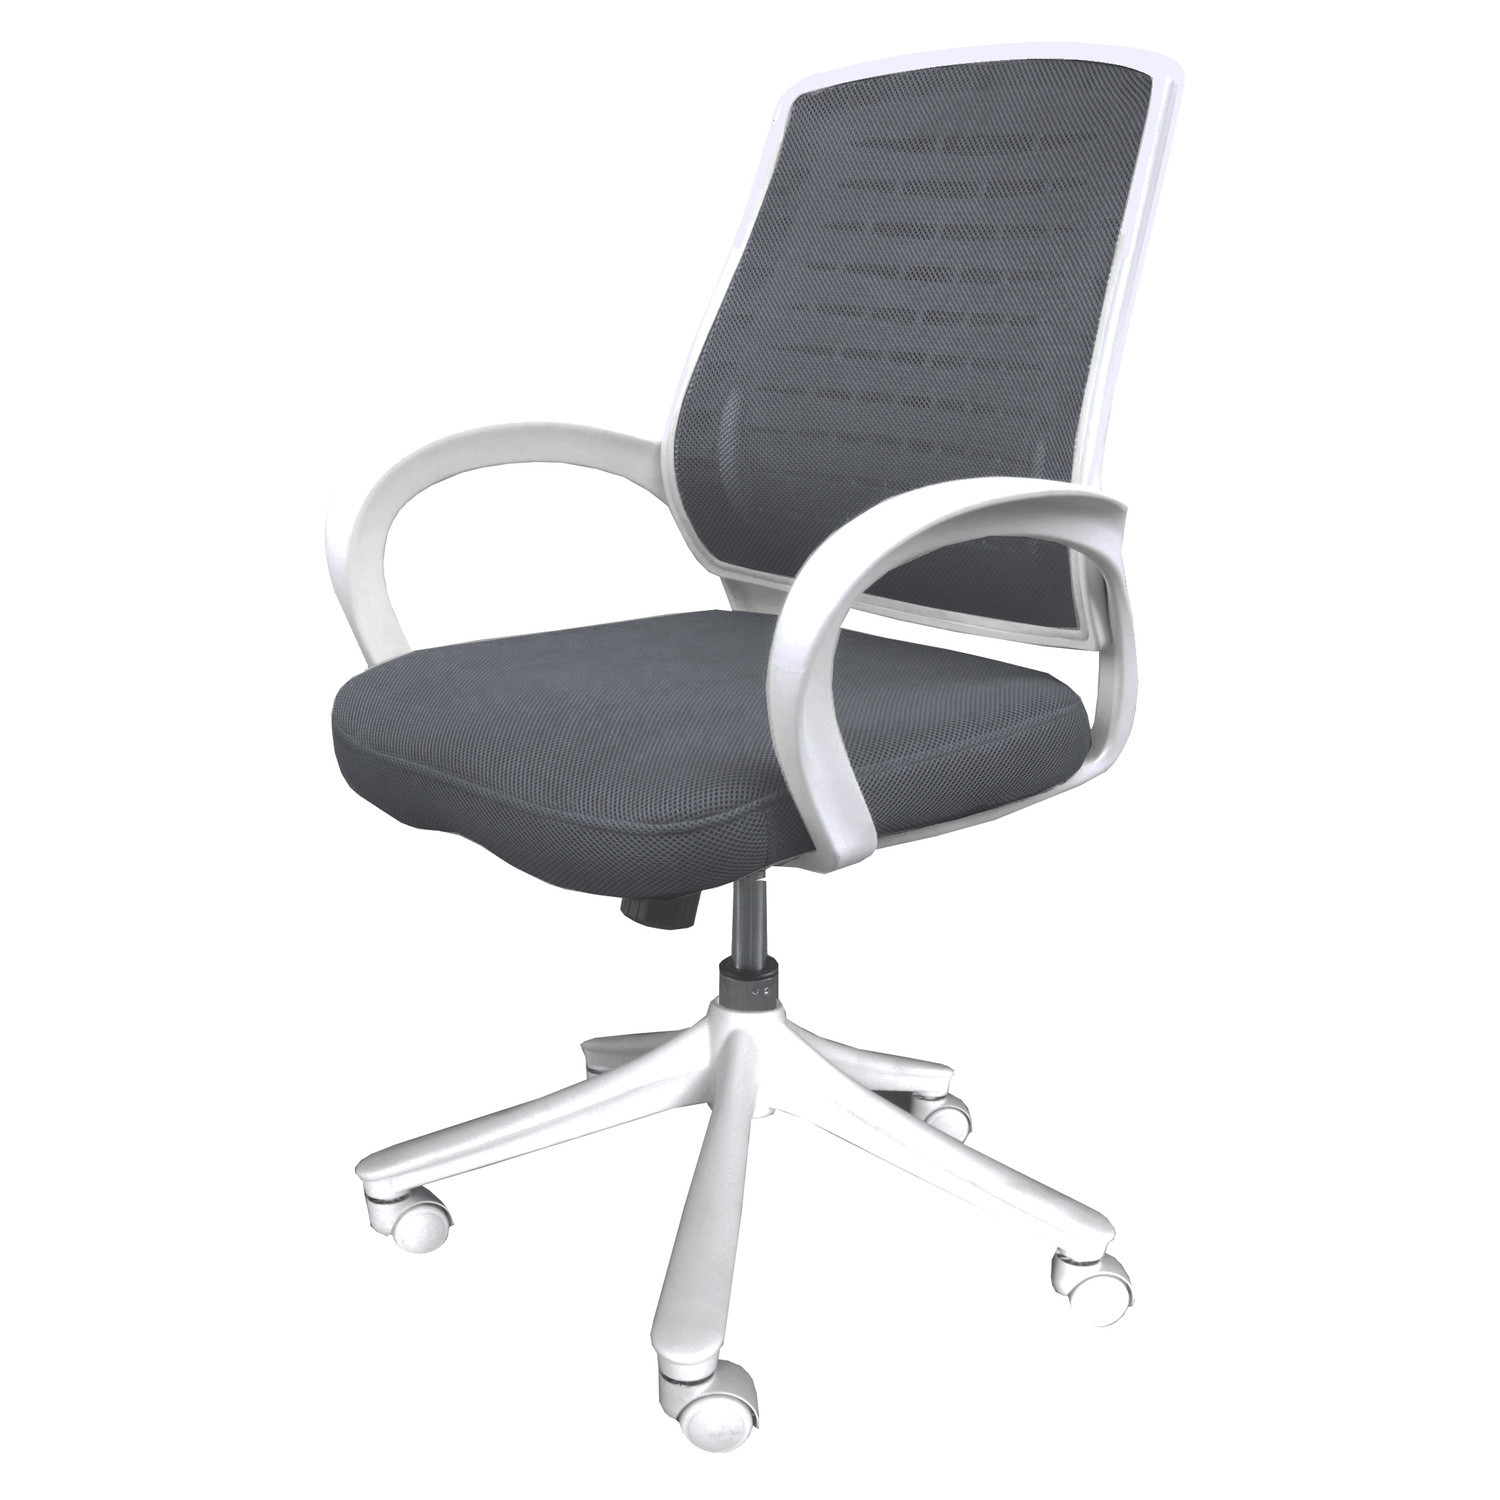 Best ideas about Best Office Chair Under 100 . Save or Pin 3 Best affordable office chairs under $100 Now.